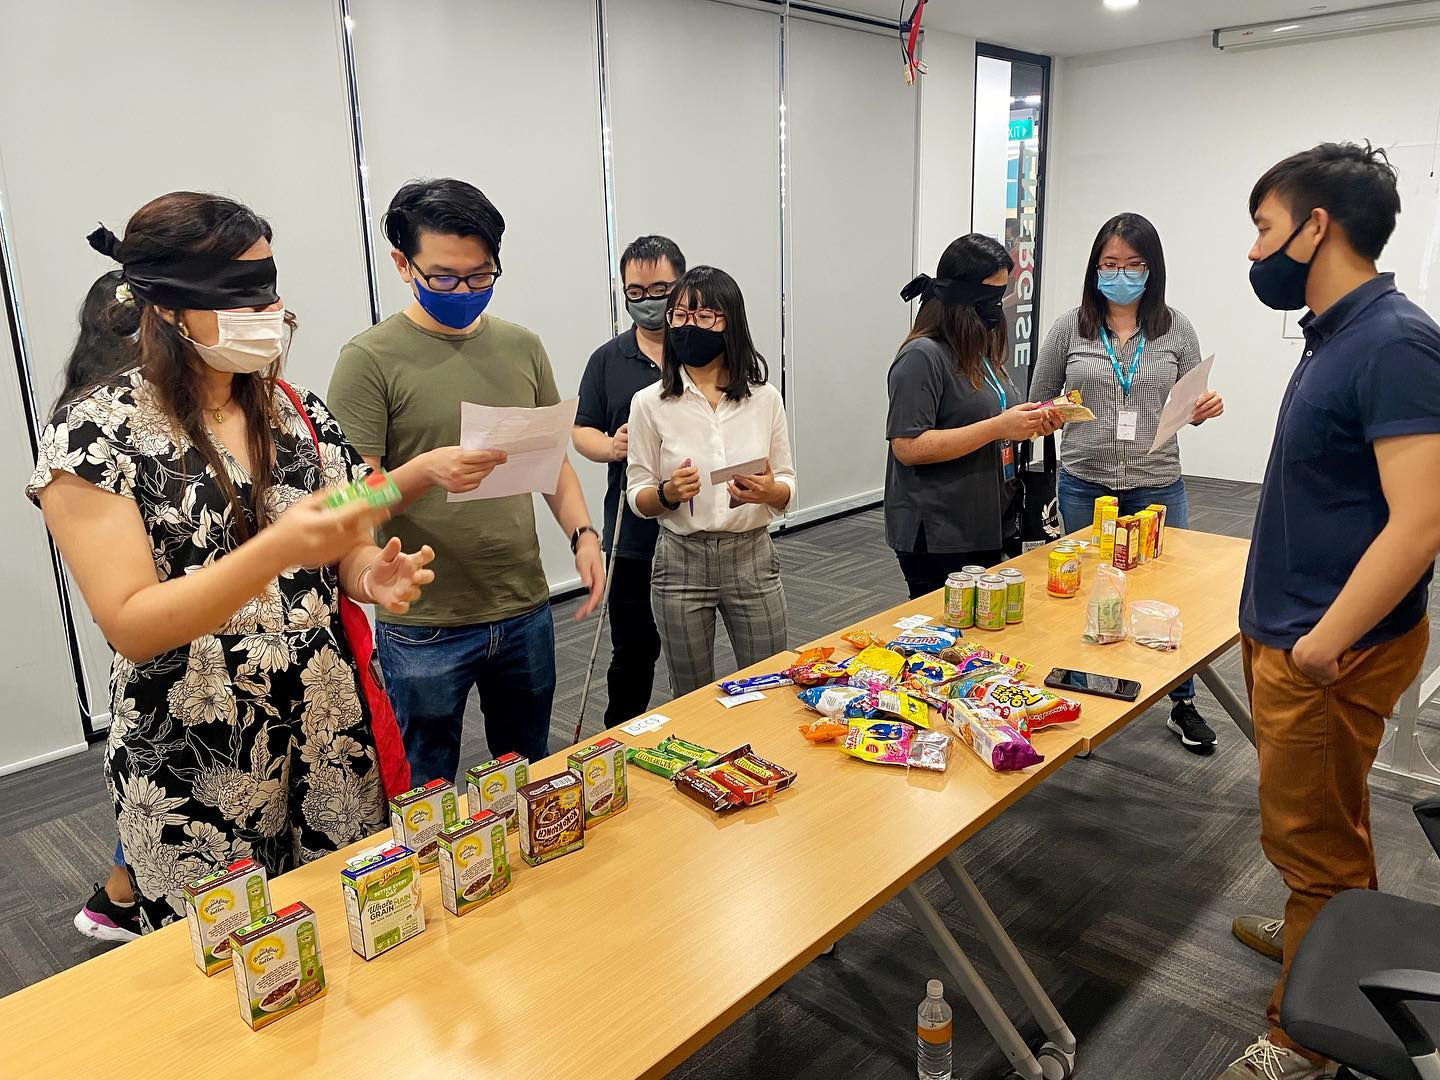 One player in a blindfolded shopping challenge shook the item to identify, competing with another player